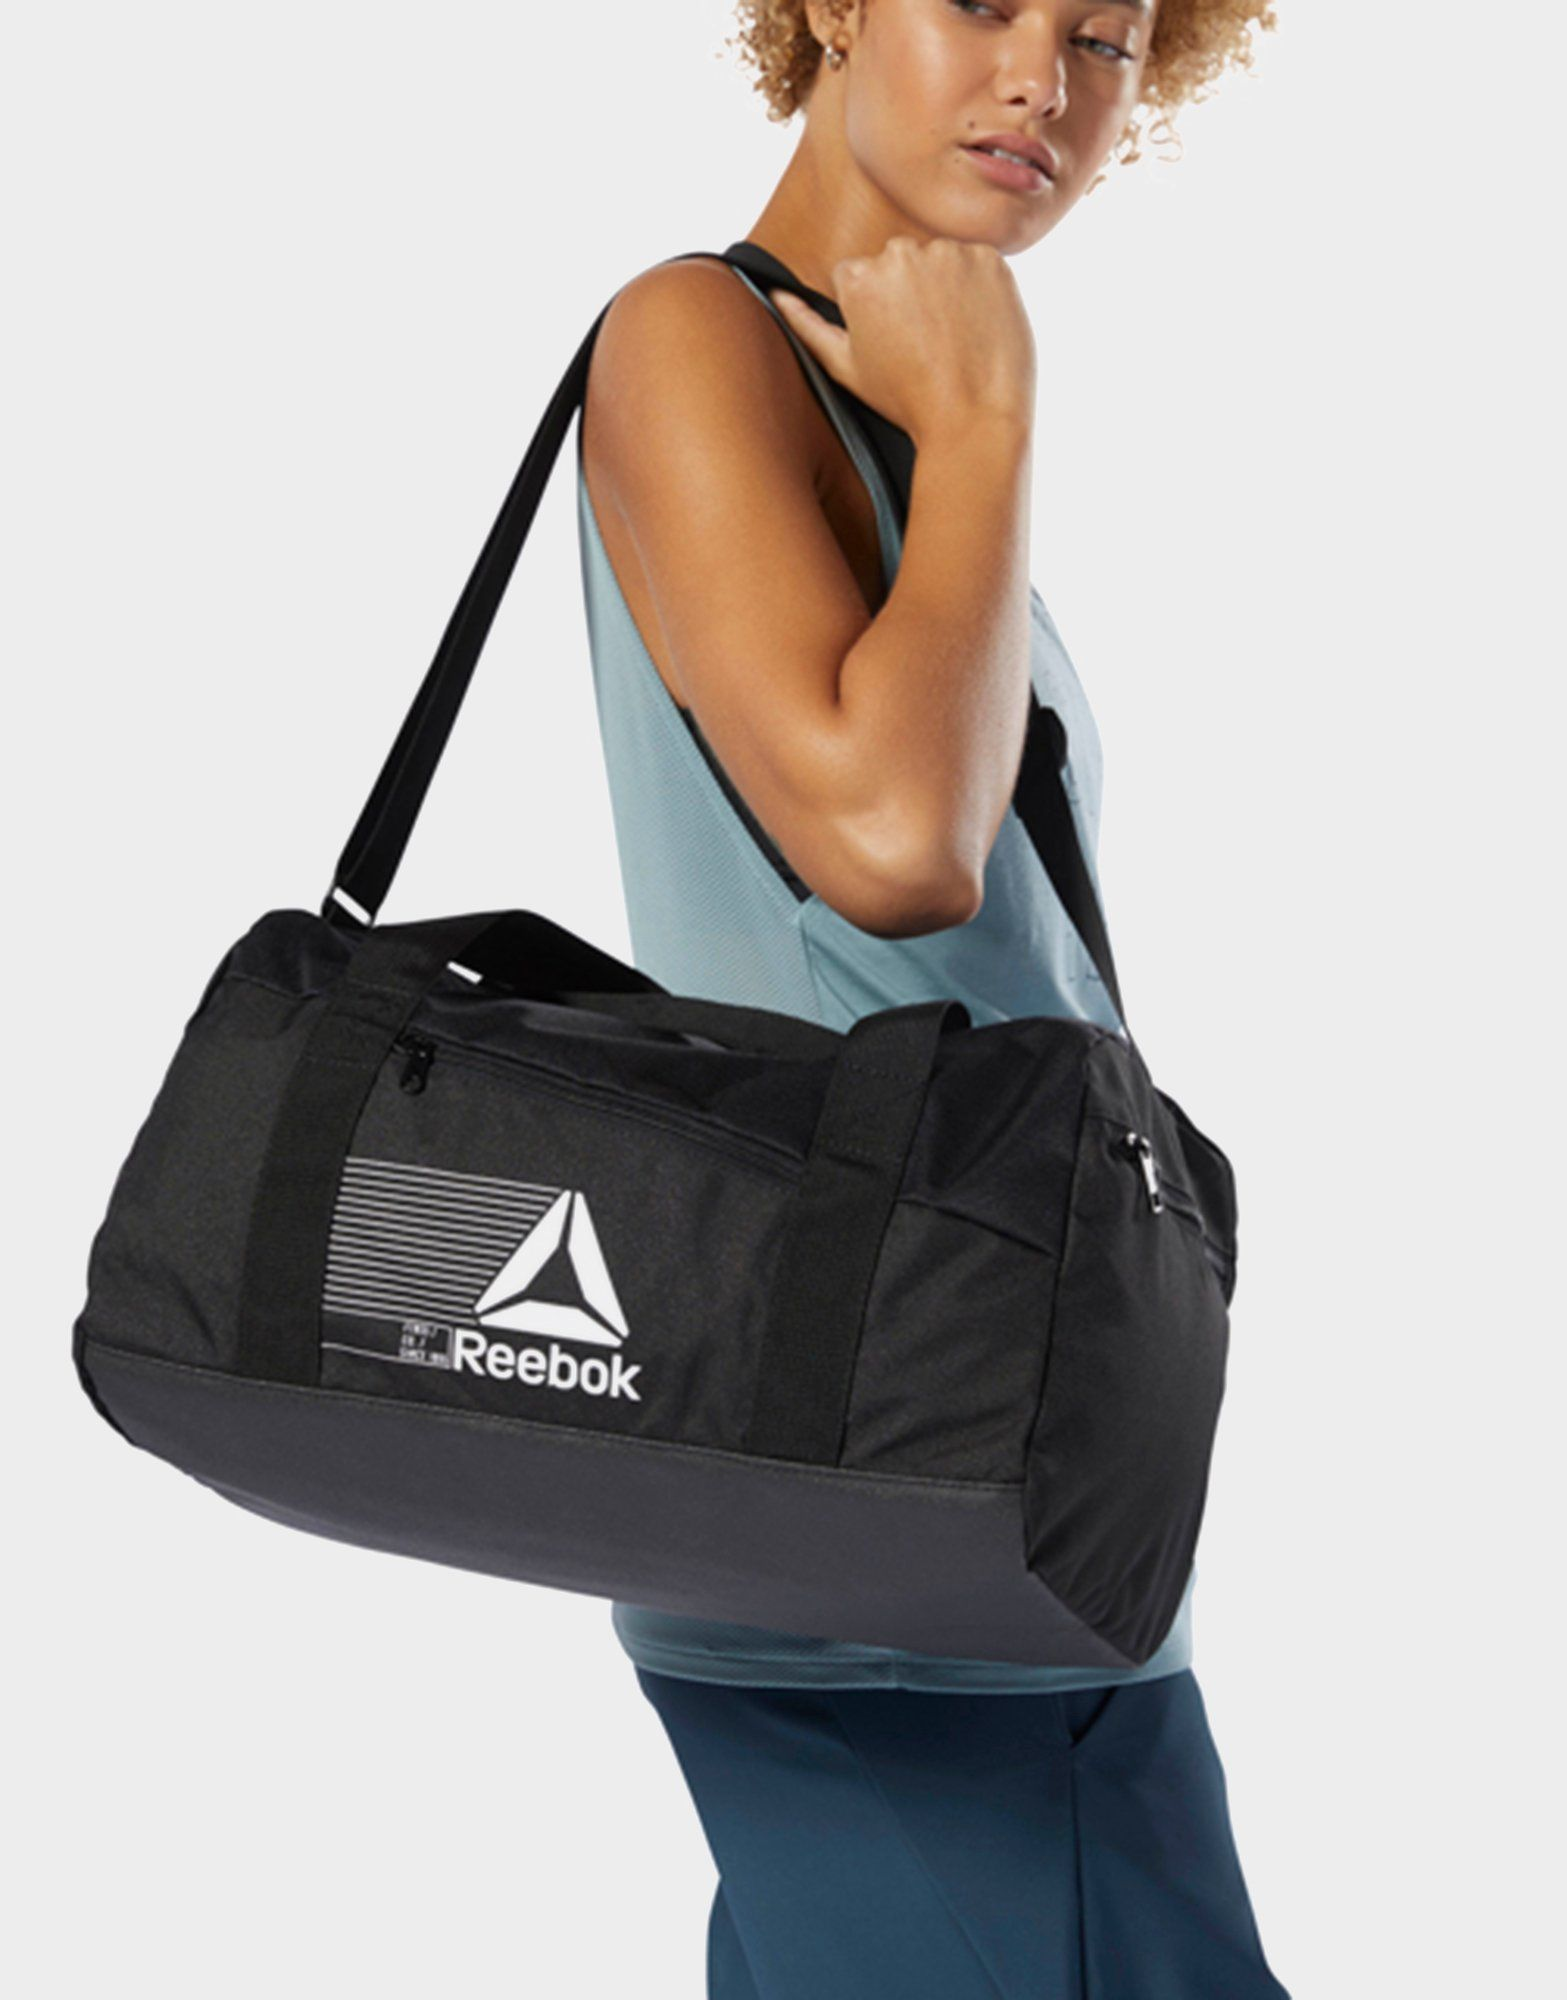 REEBOK Active Foundation Grip Duffel Bag Small